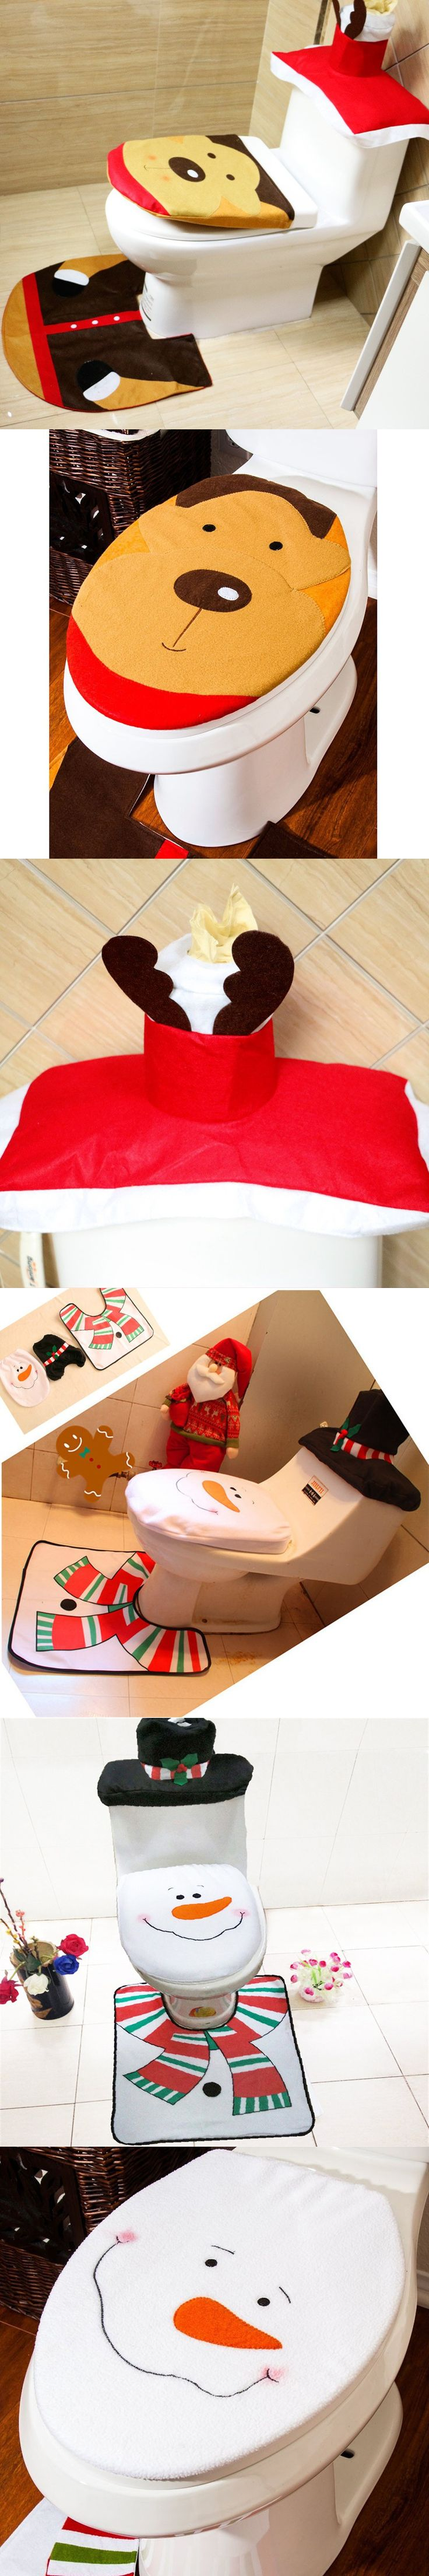 3pcs/set Santa ElkToilet Sets Cover Rug Bathroom Mat Set Christmas Decorations Adornos Navidad Snowman for Home Decoration #3 $10.53